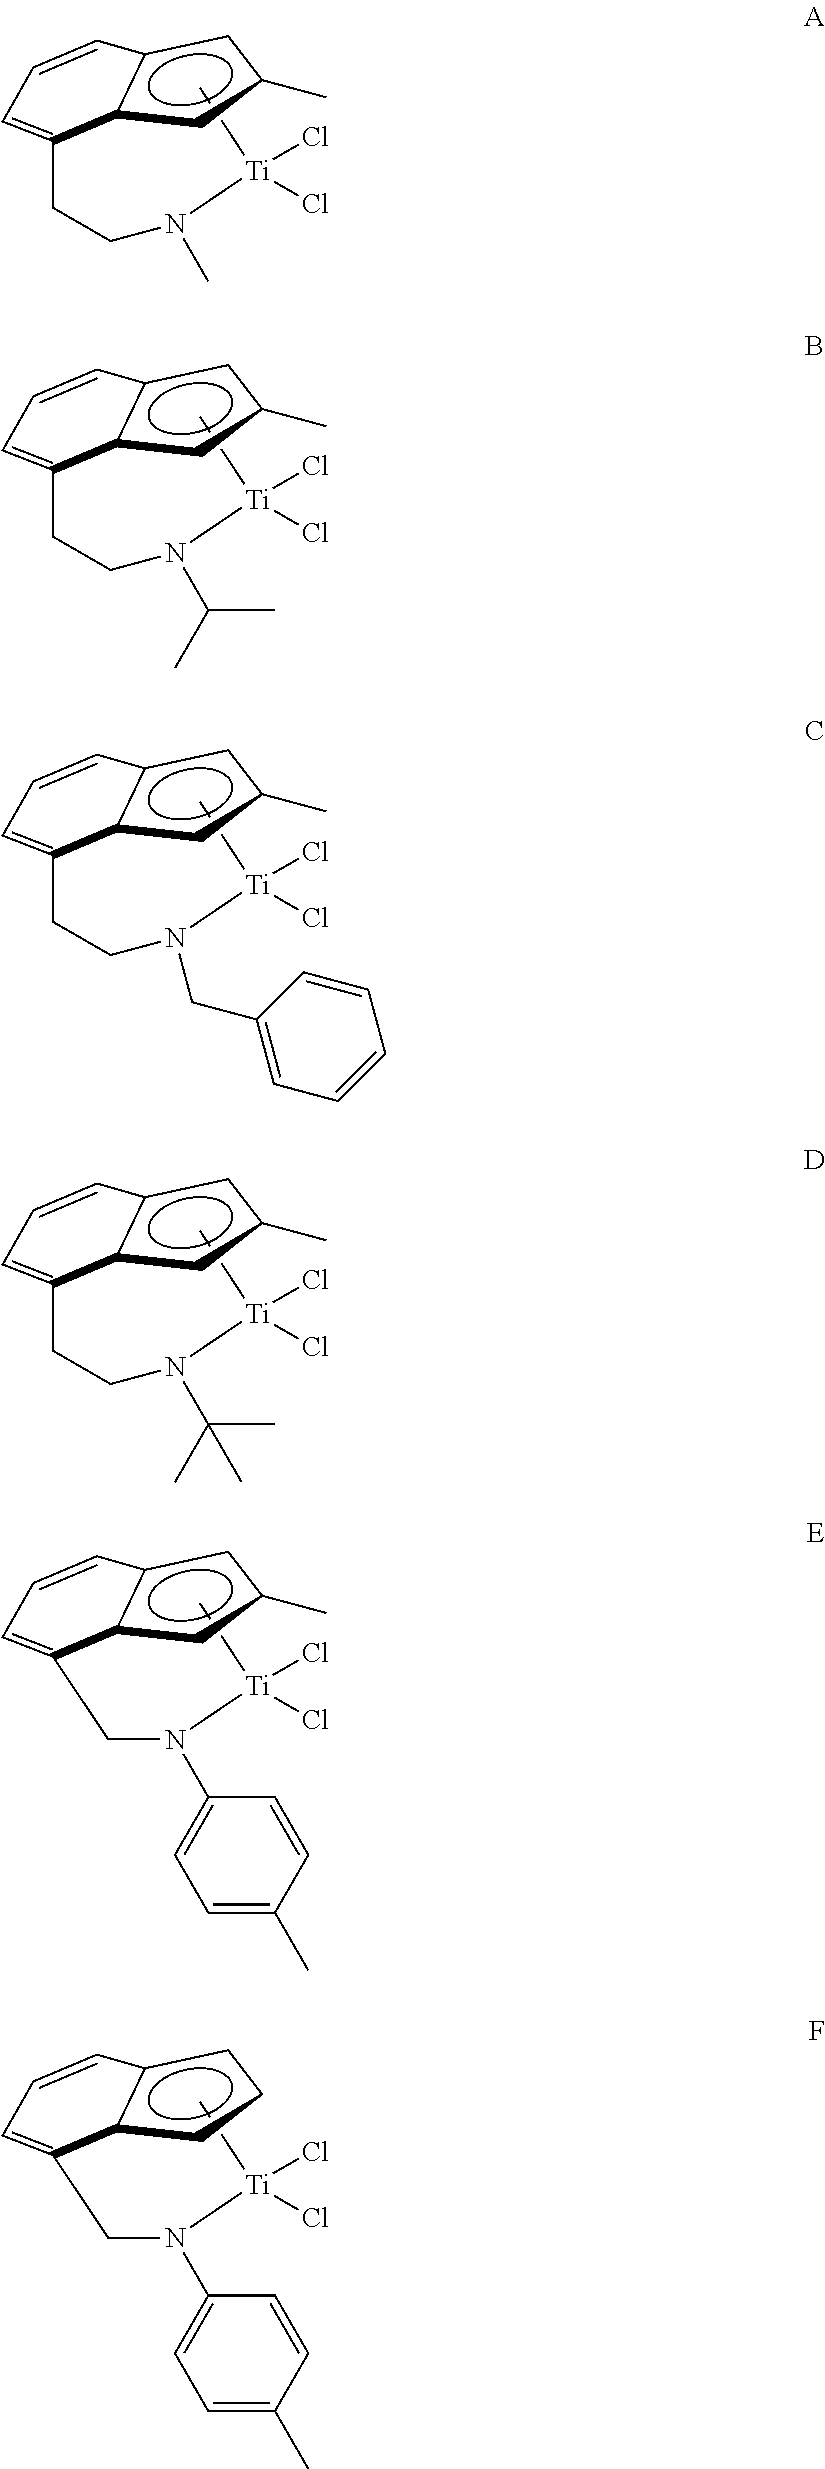 Us8058461b2 Mono Indenyl Transition Metal Compounds And Sisir Set Ts 222 Figure Us08058461 20111115 C00029